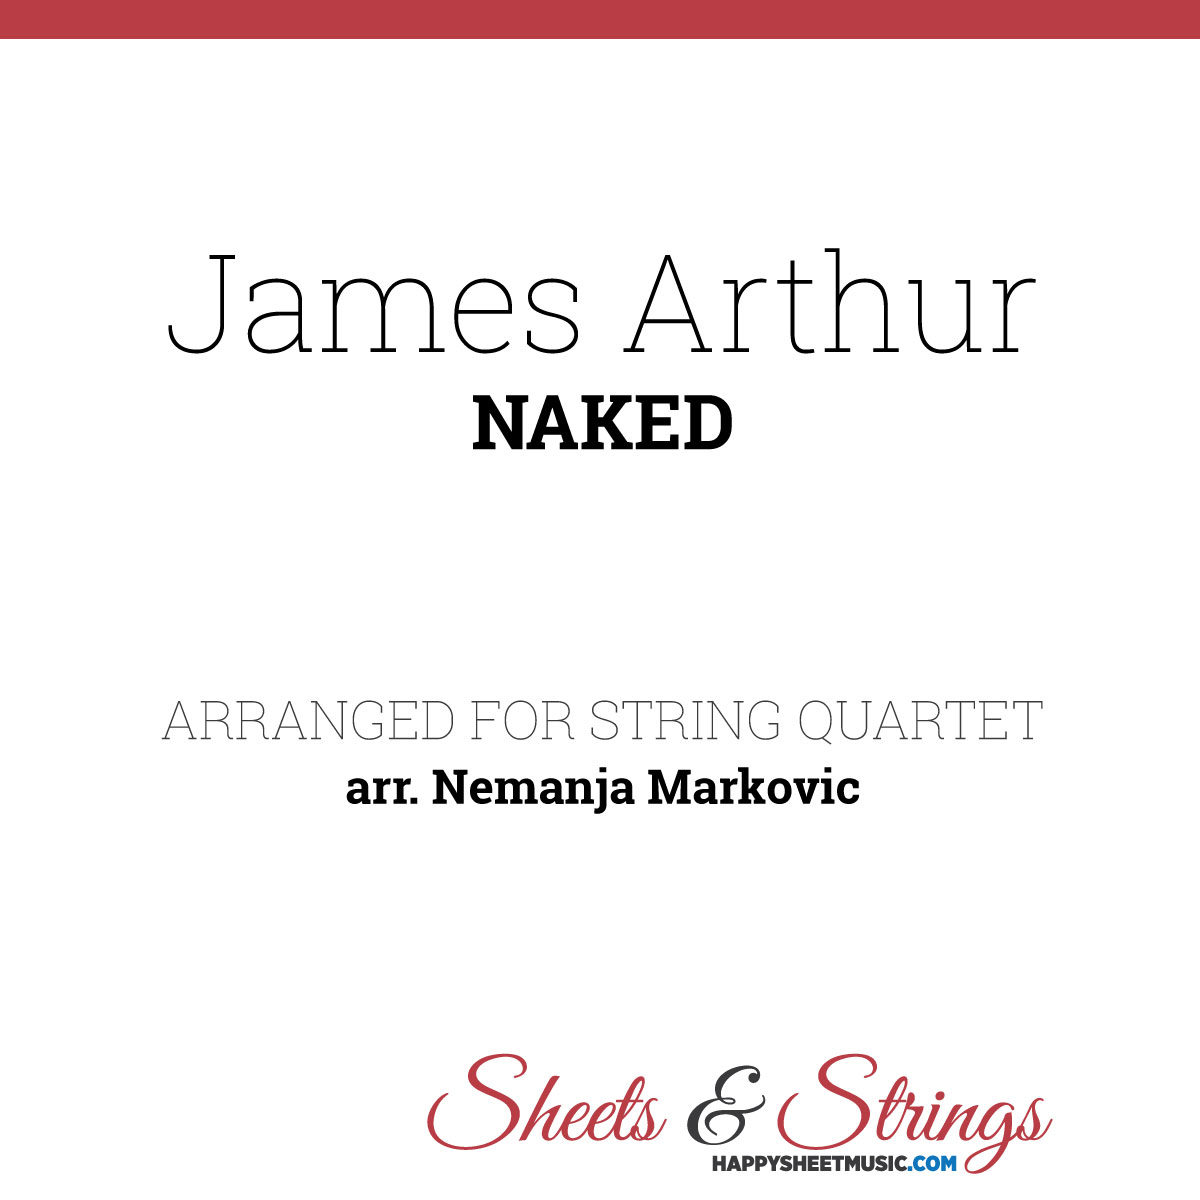 James Arthur - Naked - Sheet Music for String Quartet - Music Arrangement for String Quartet